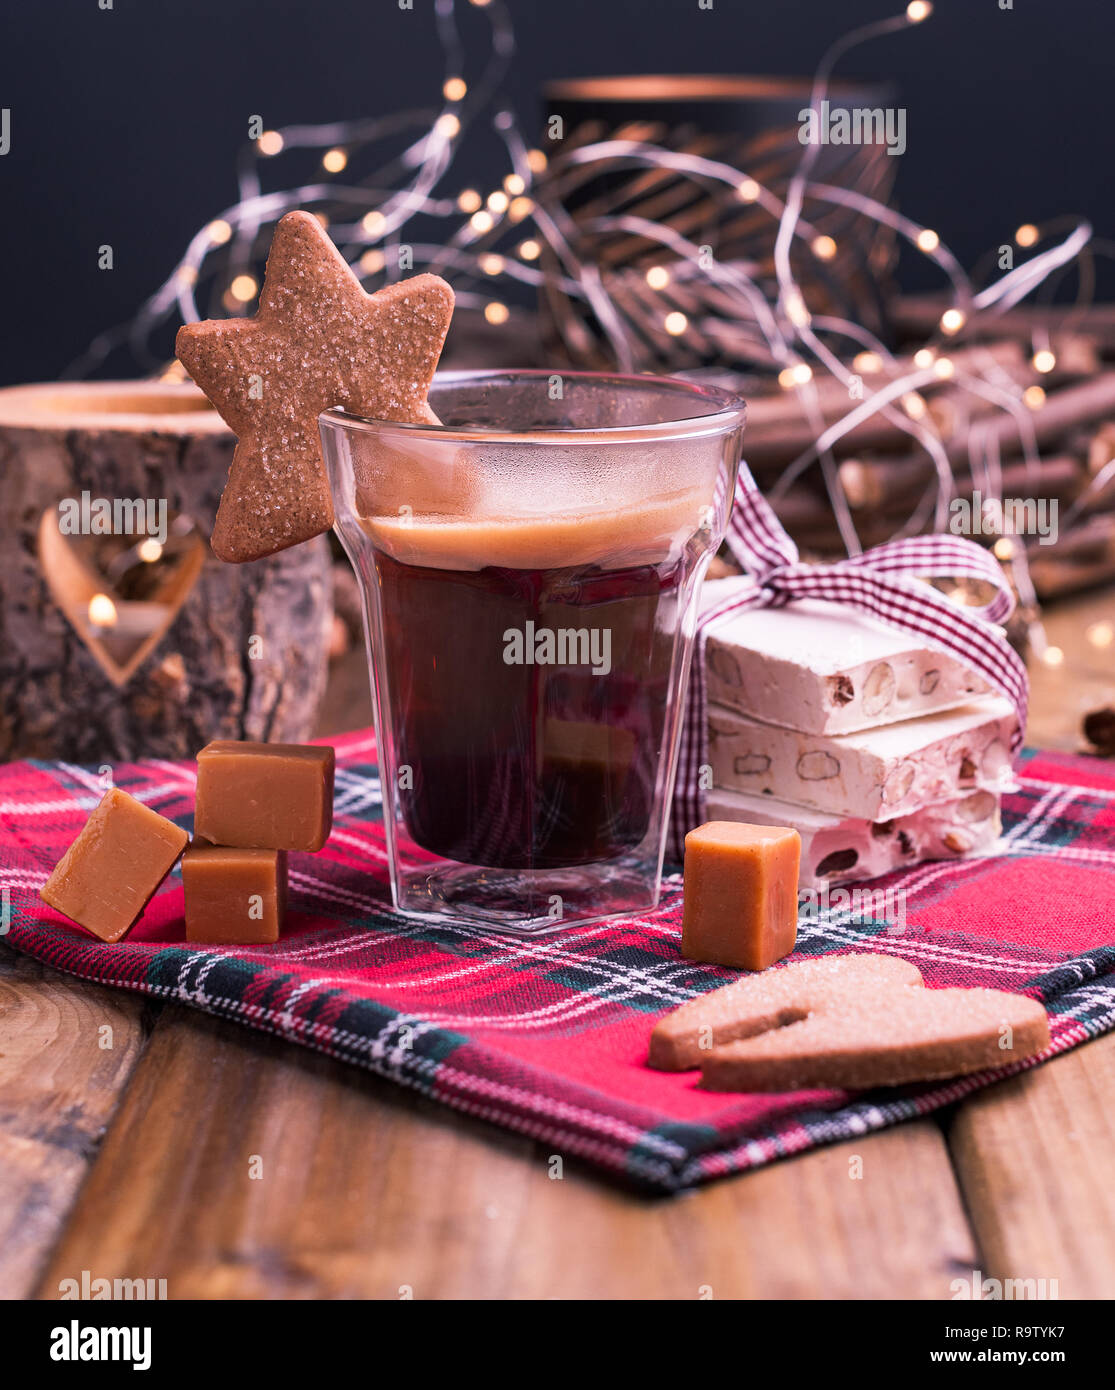 Fresh Aromatic Coffee And Italian Christmas Sweets Nougat With